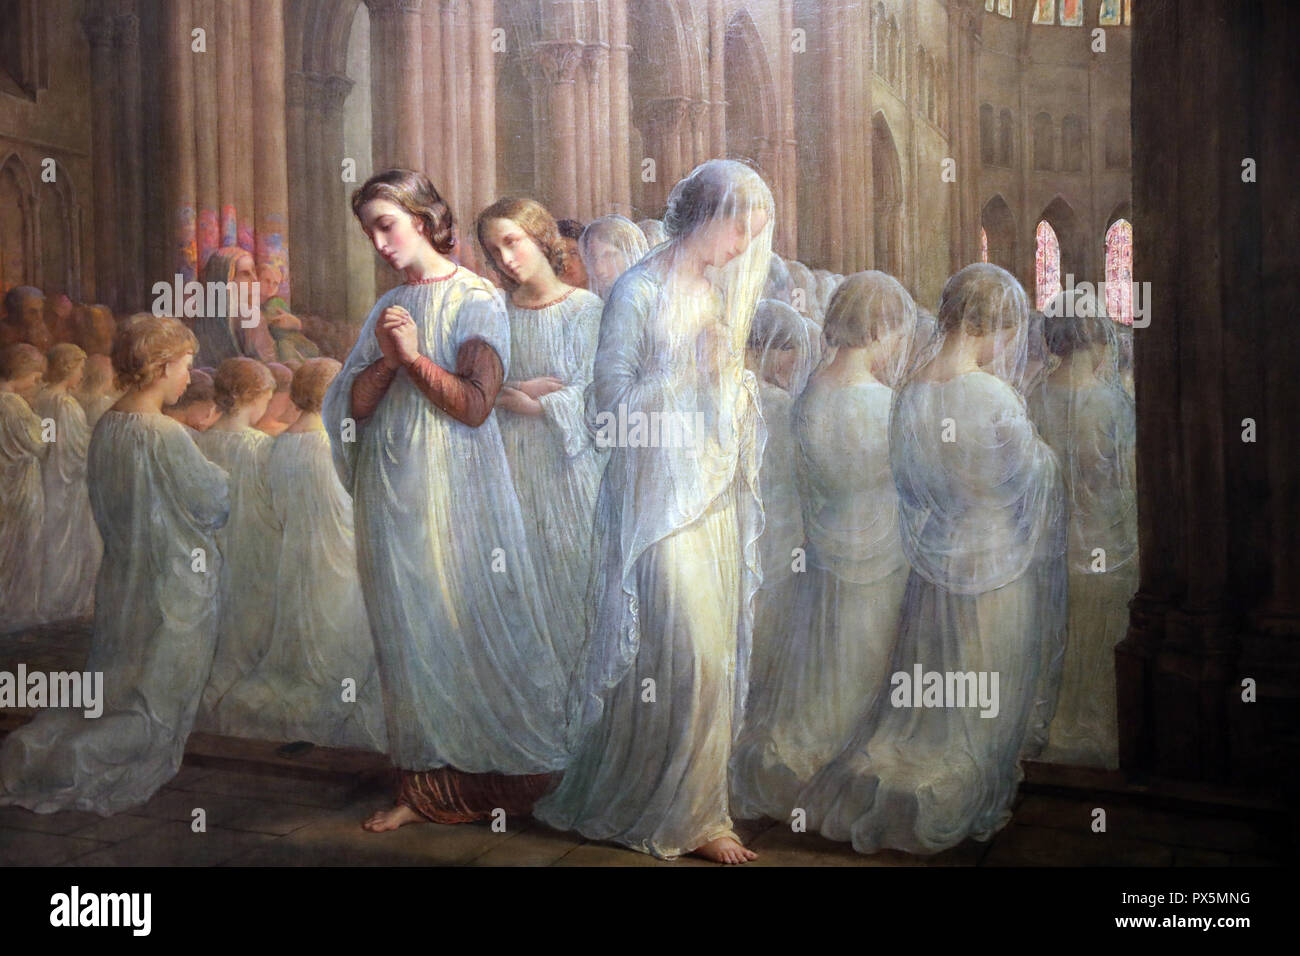 MusŽe des Beaux-Arts, Lyon, France. Fine Art museum, Lyon, France.  Louis Janmot, The Poem of the Soul, between 1835 and 1855.  First Holy Communion. - Stock Image